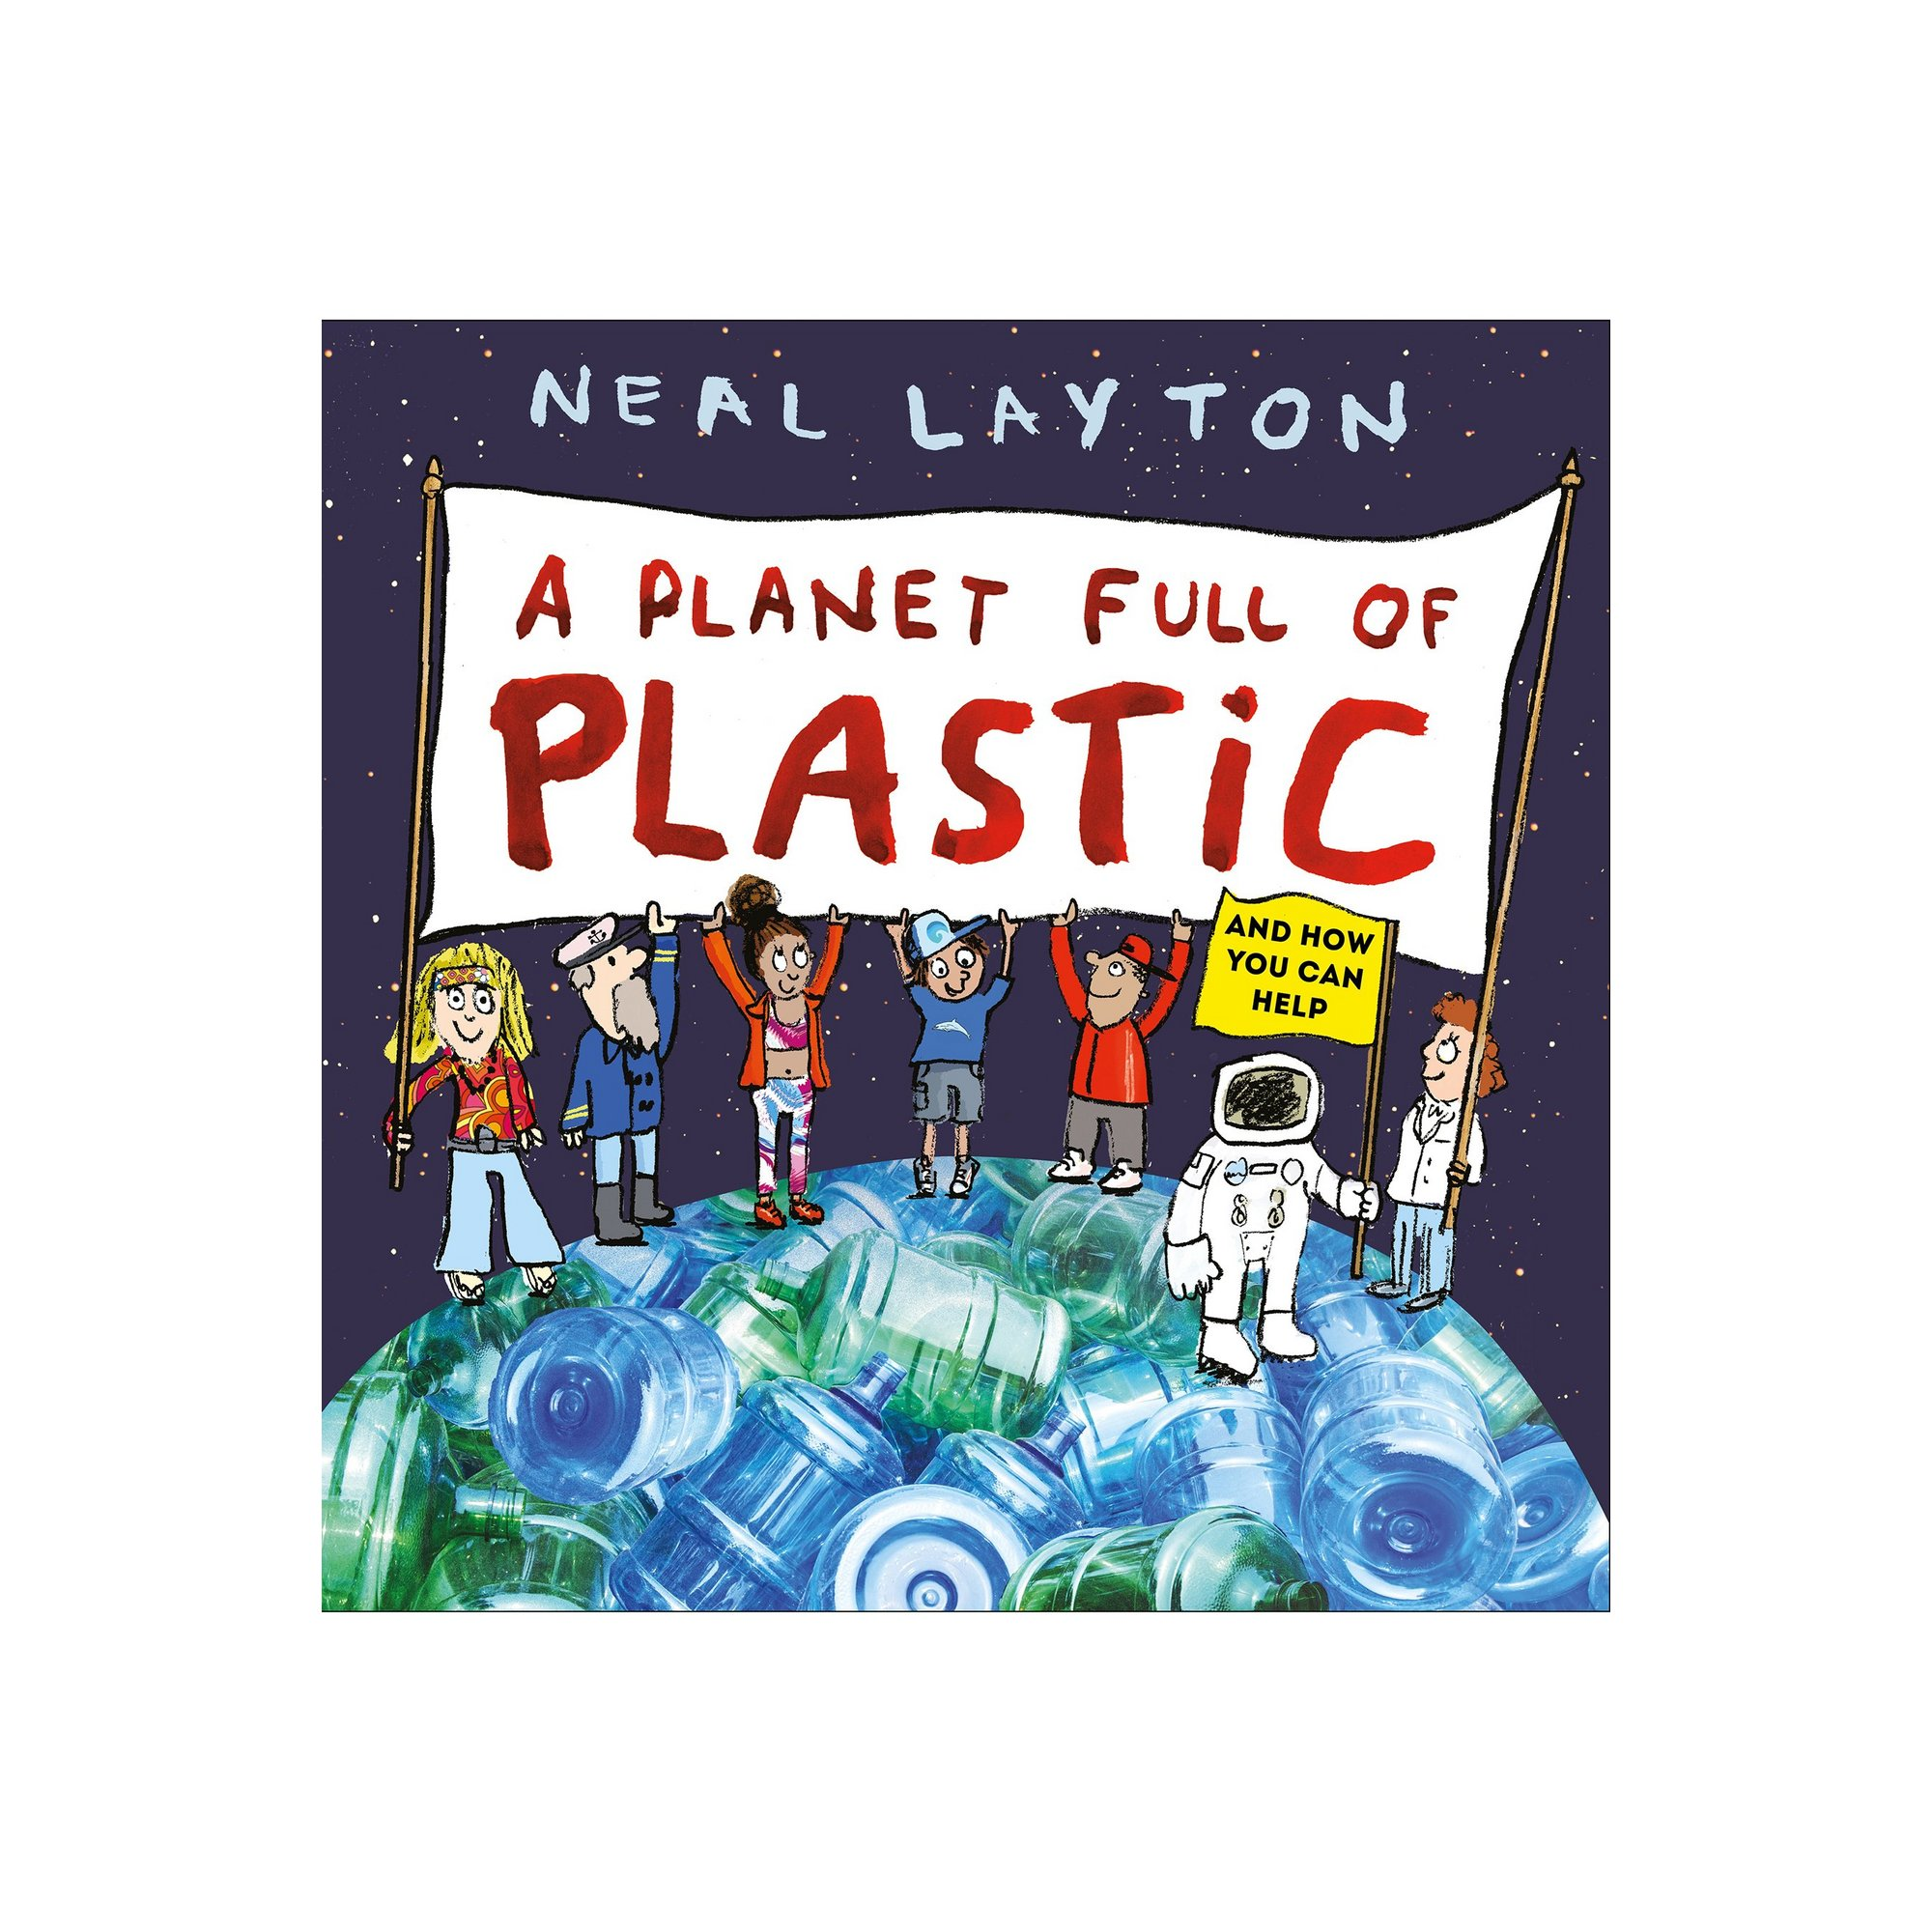 Image of A Planet Full of Plastic